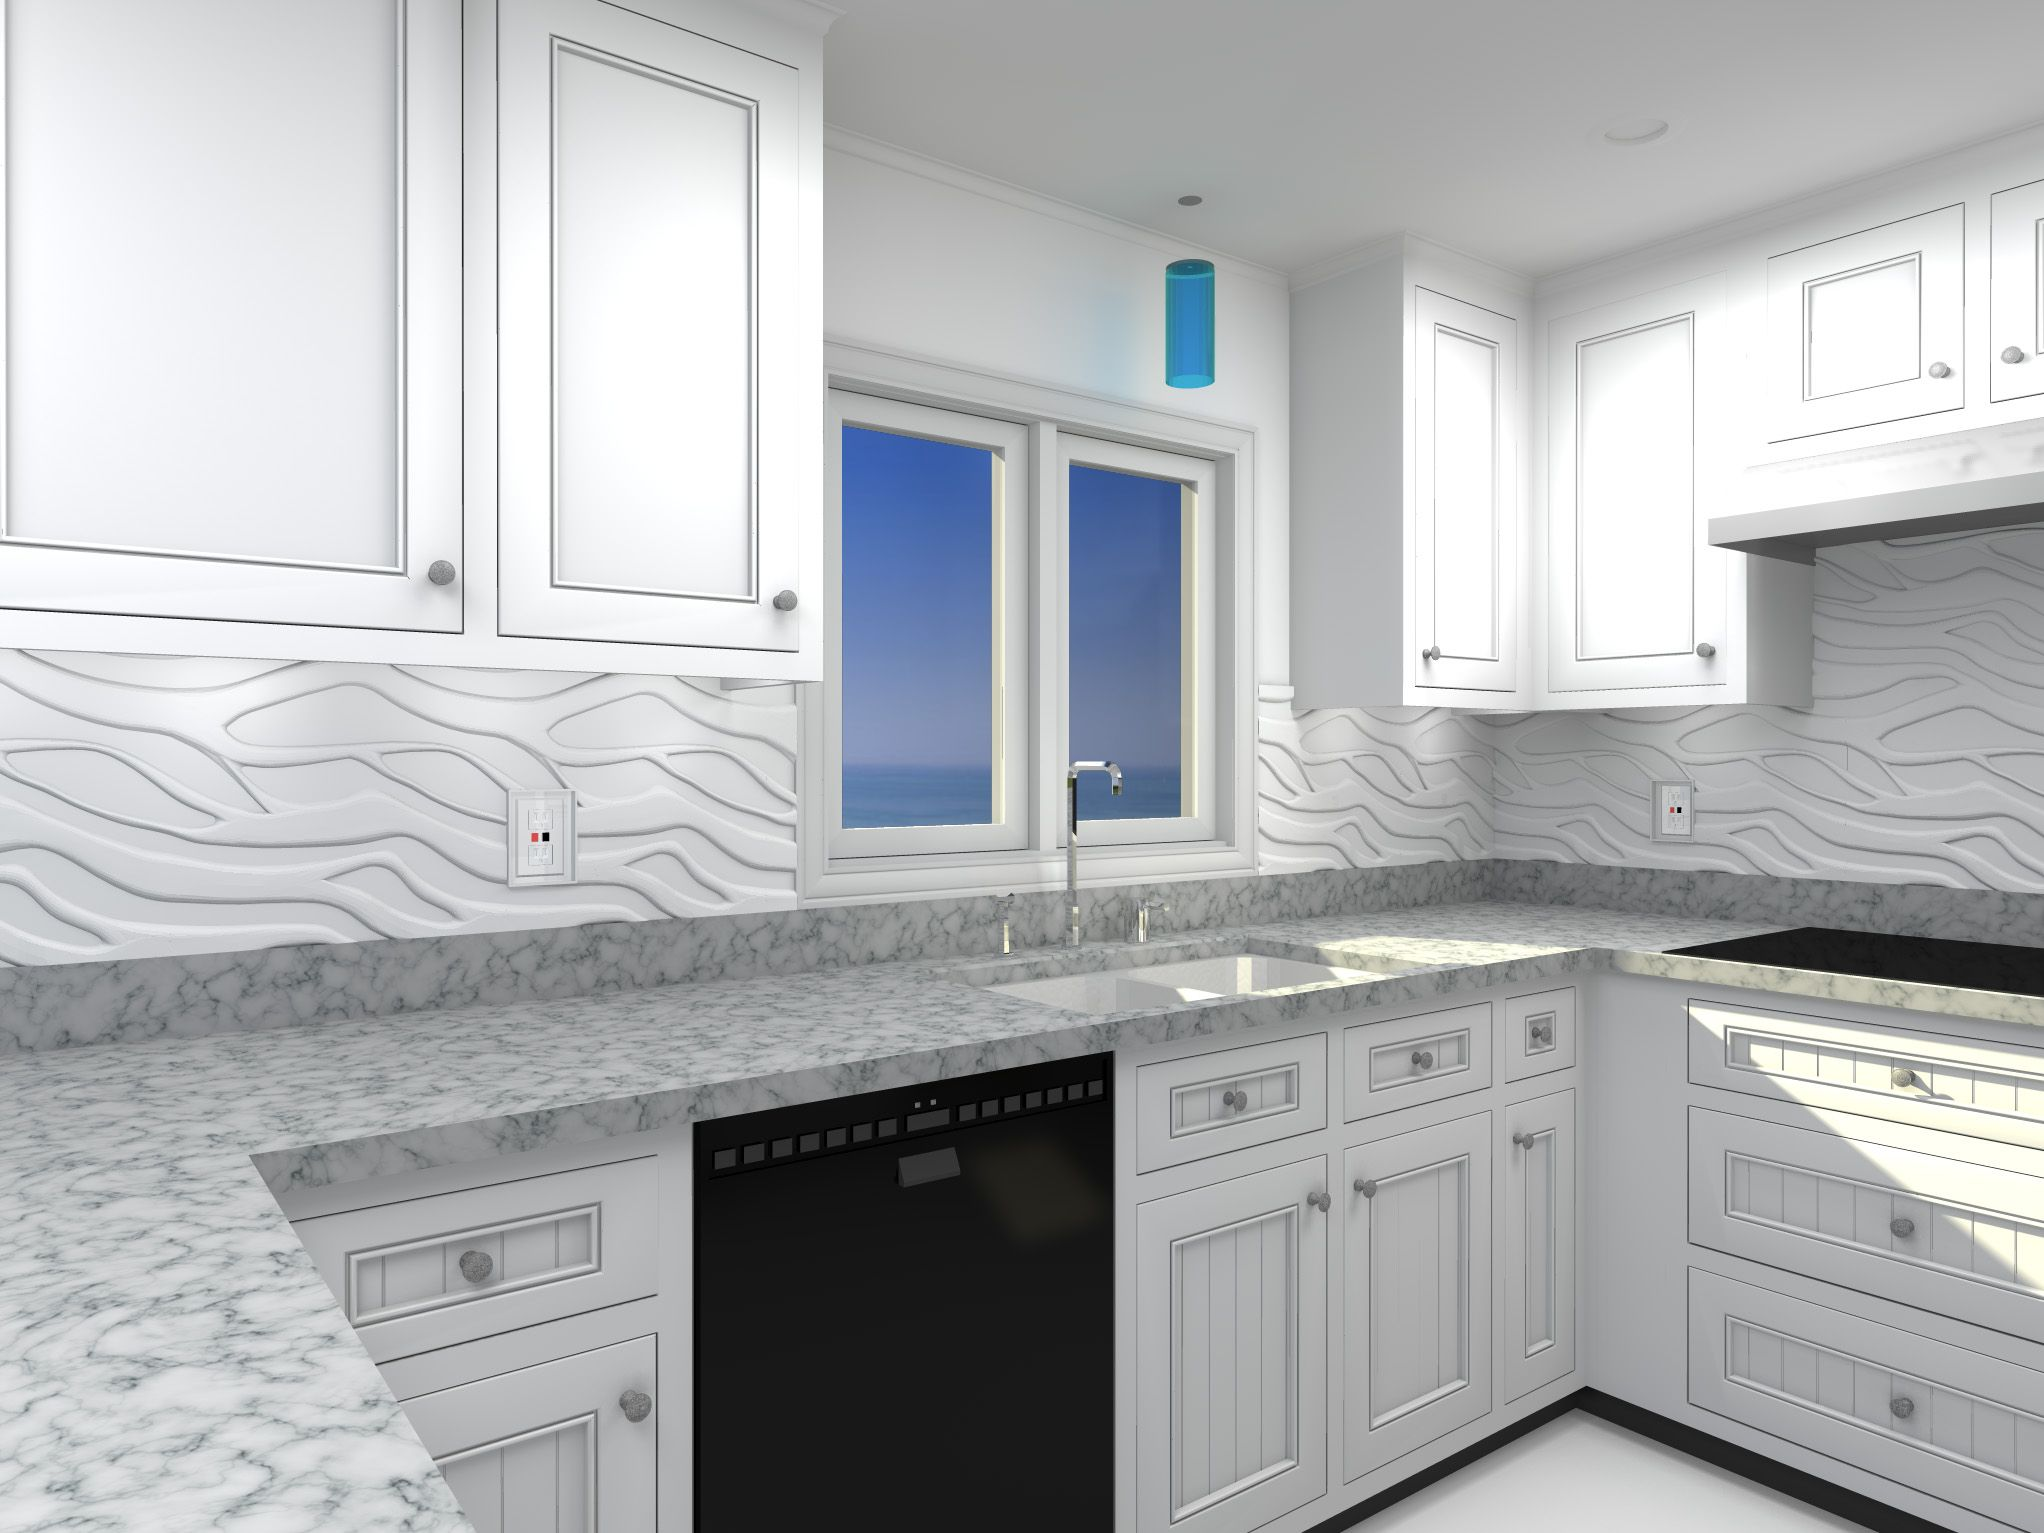 kitchen wall coverings hanging rack 3d panels as a backsplash google search house